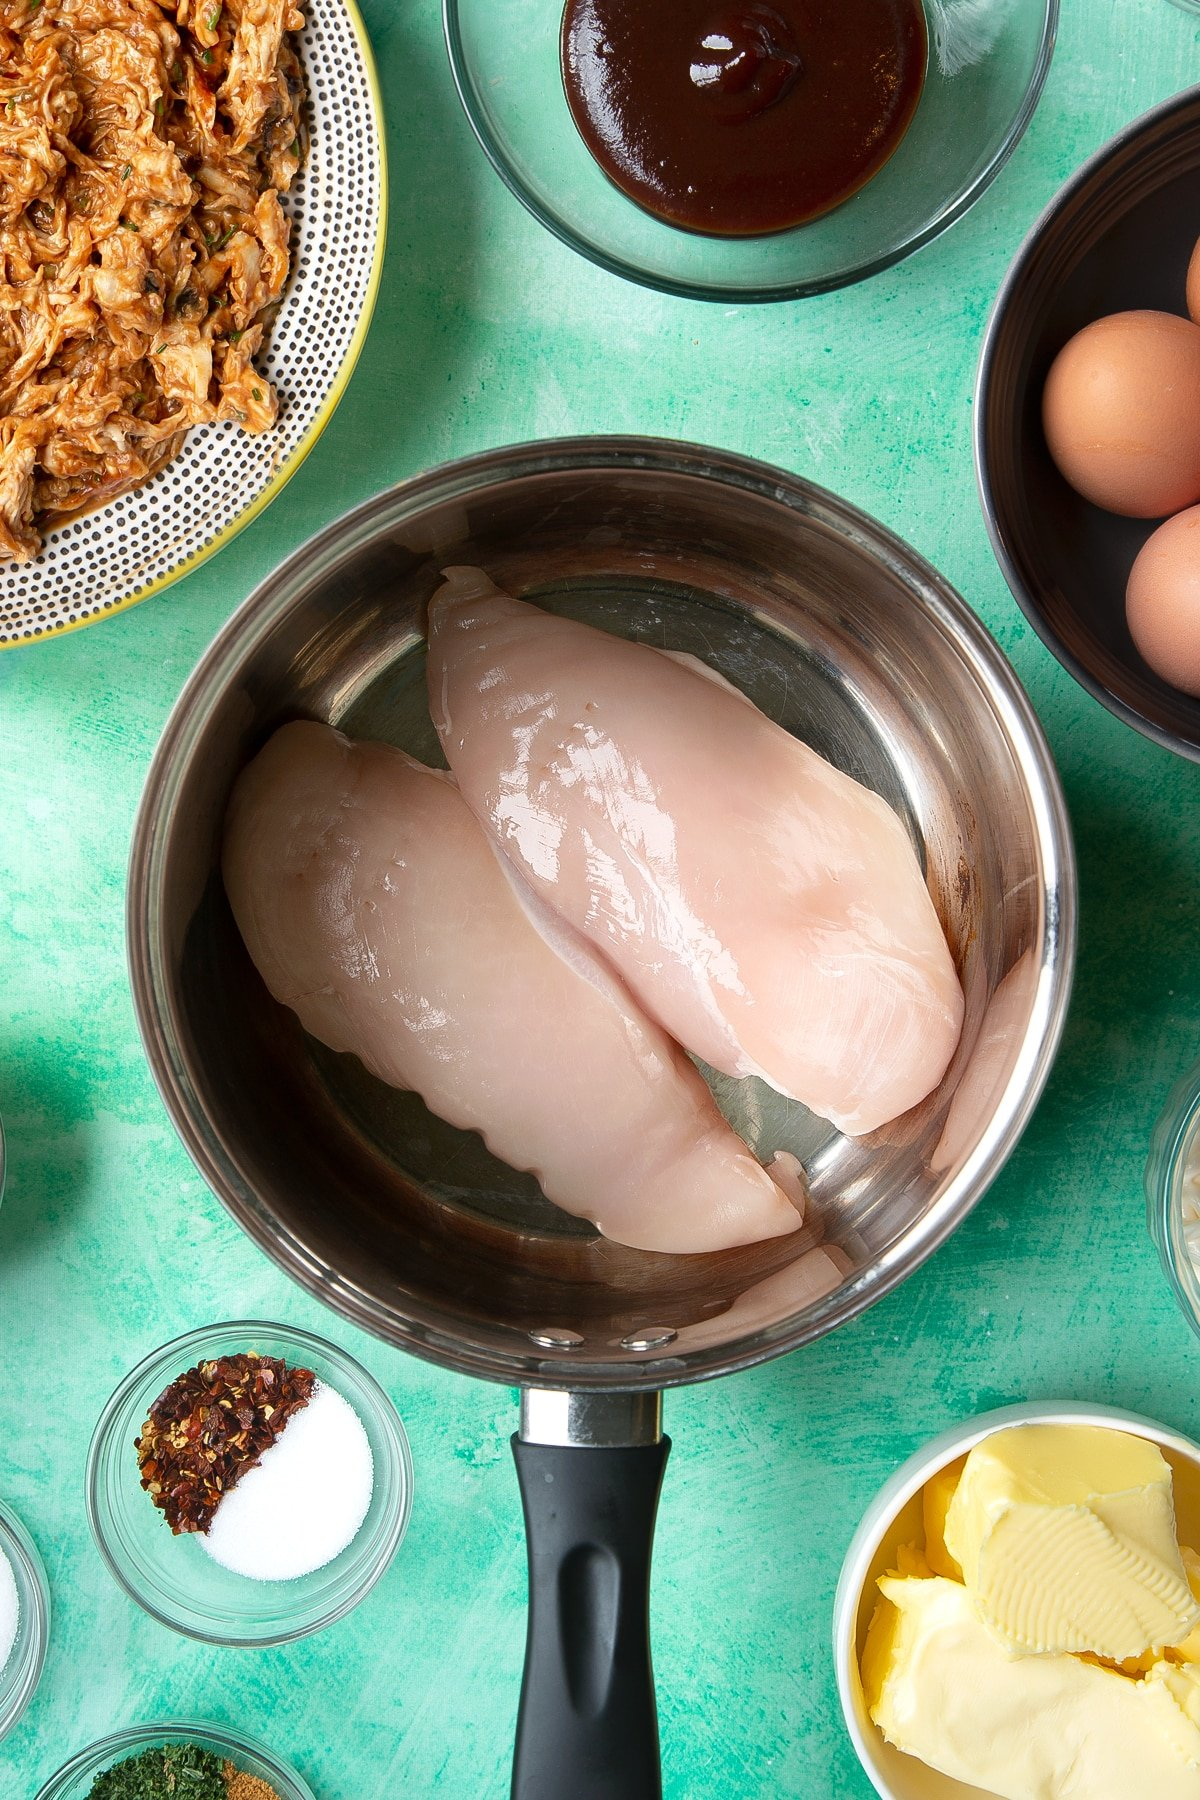 Two raw chicken breasts in a pan. Ingredients to make chicken doughnuts surround the pan.